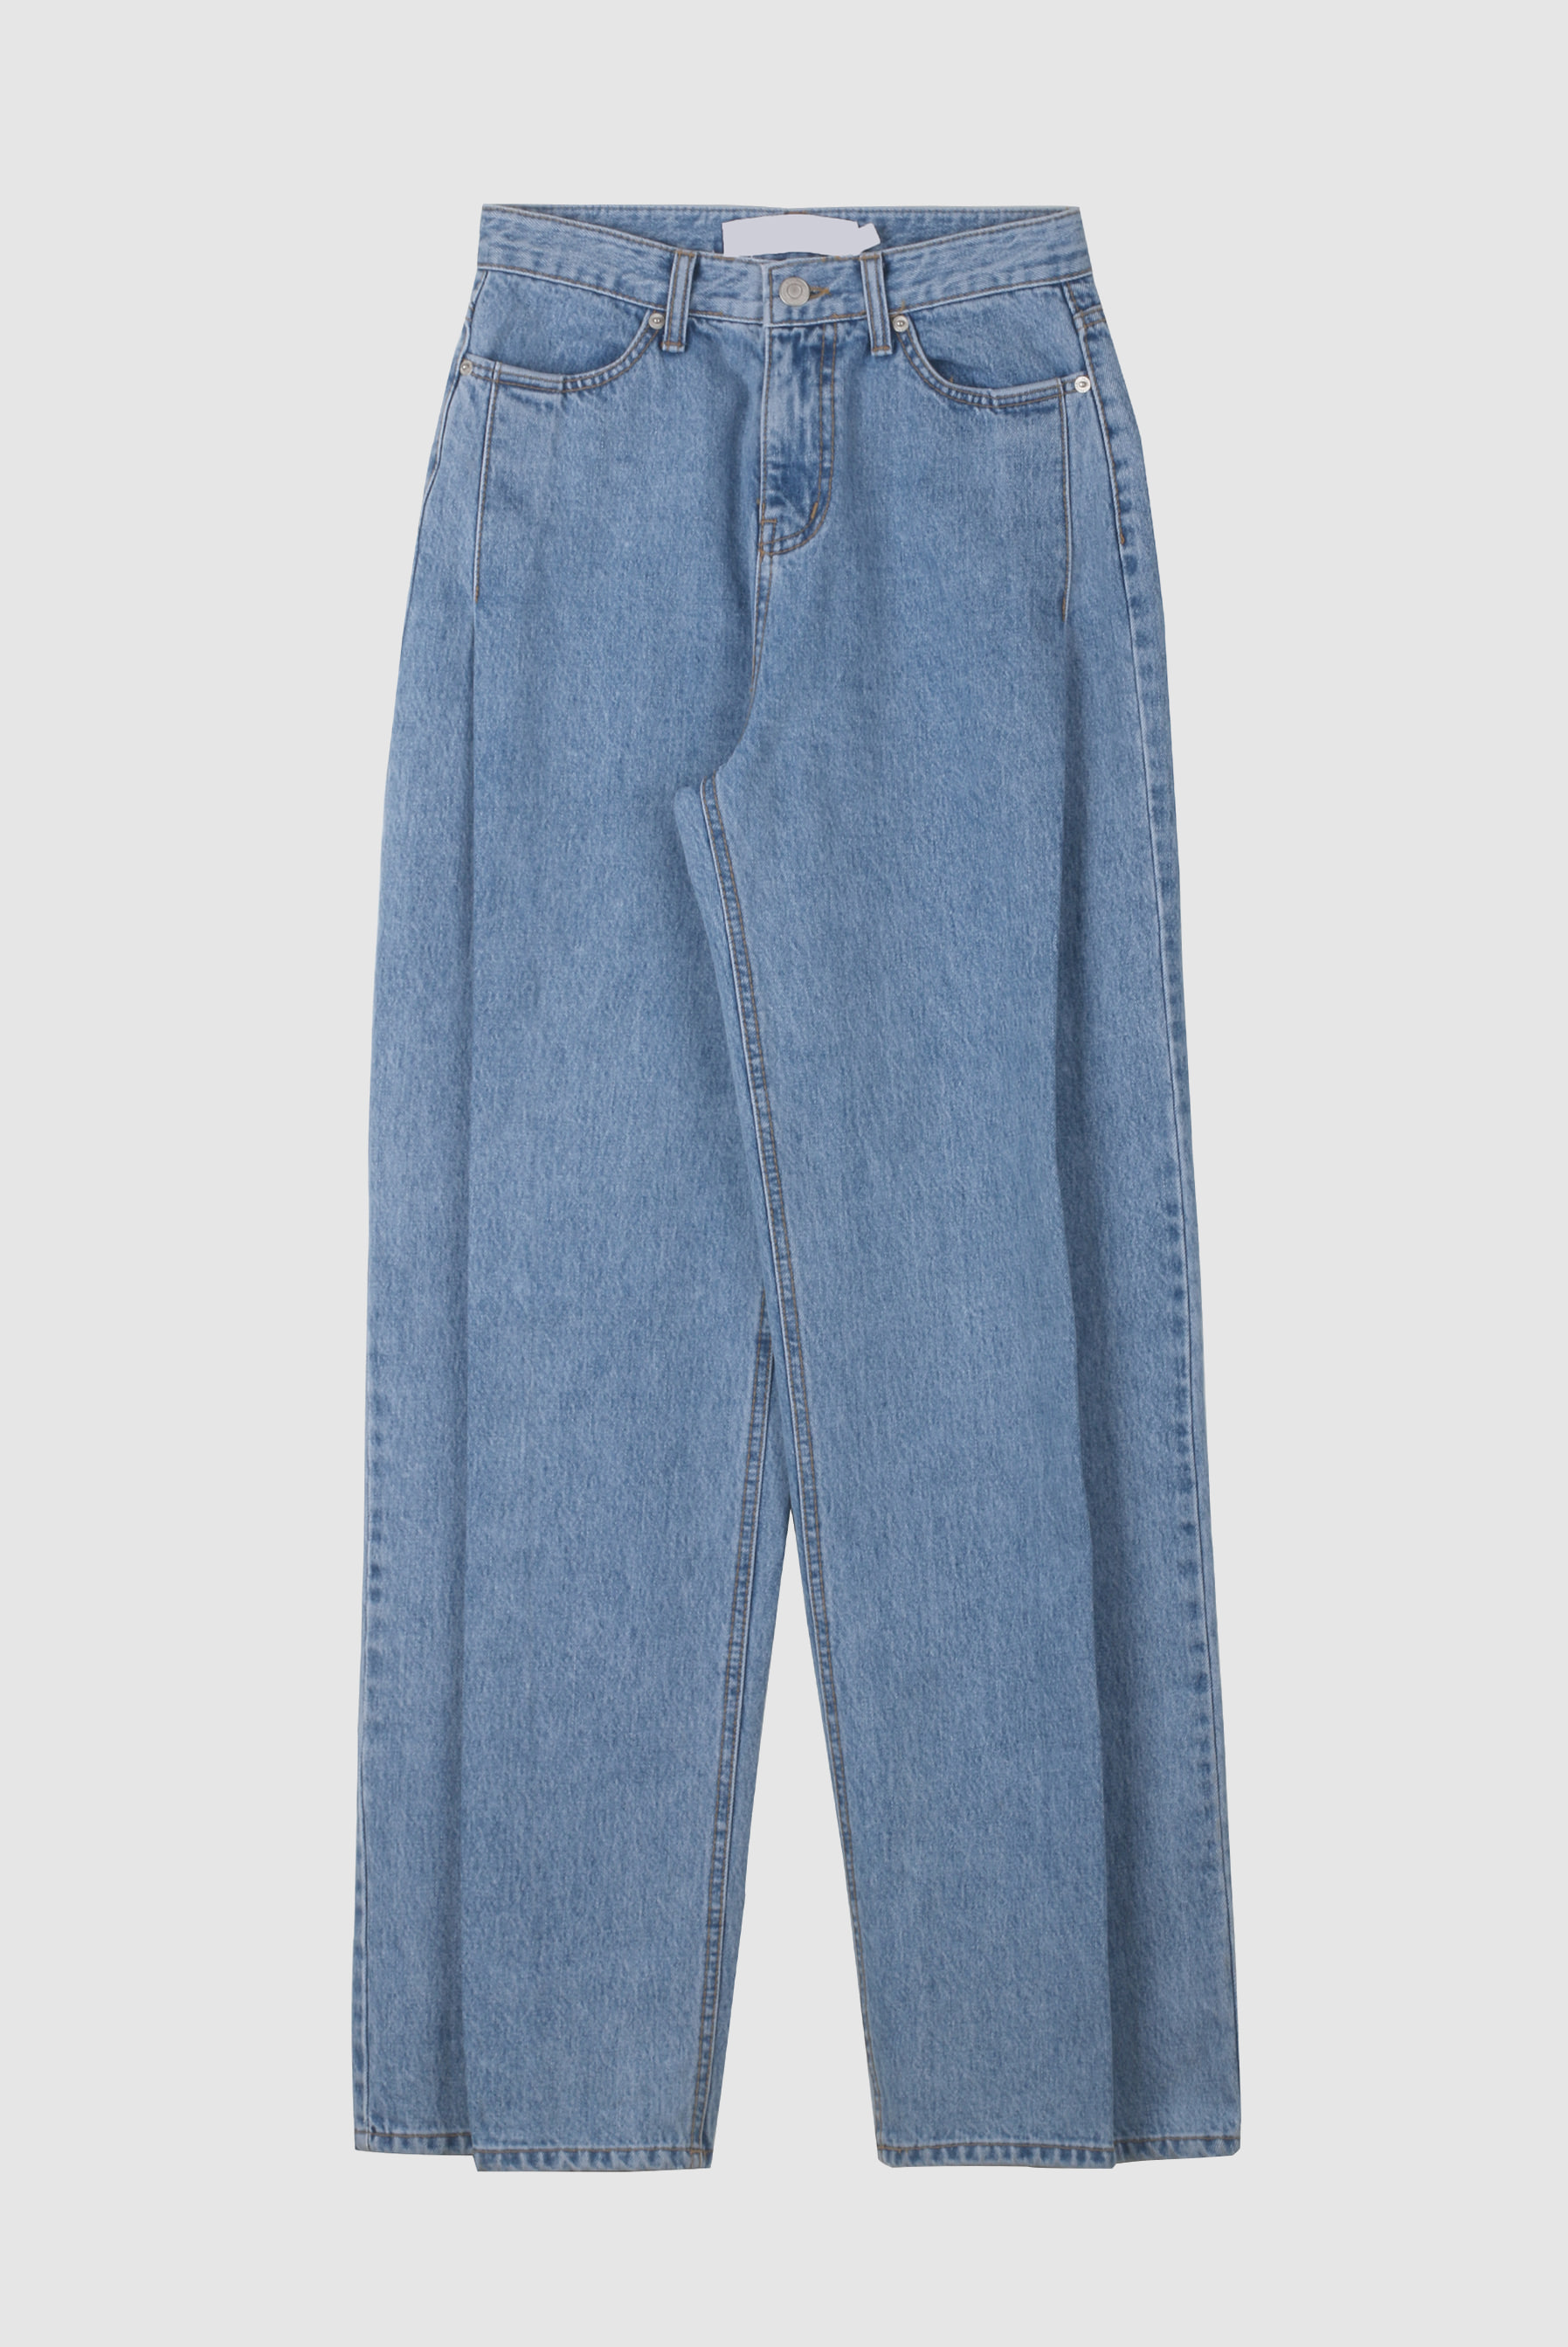 Spring Pin_Tuck Denim_Pant